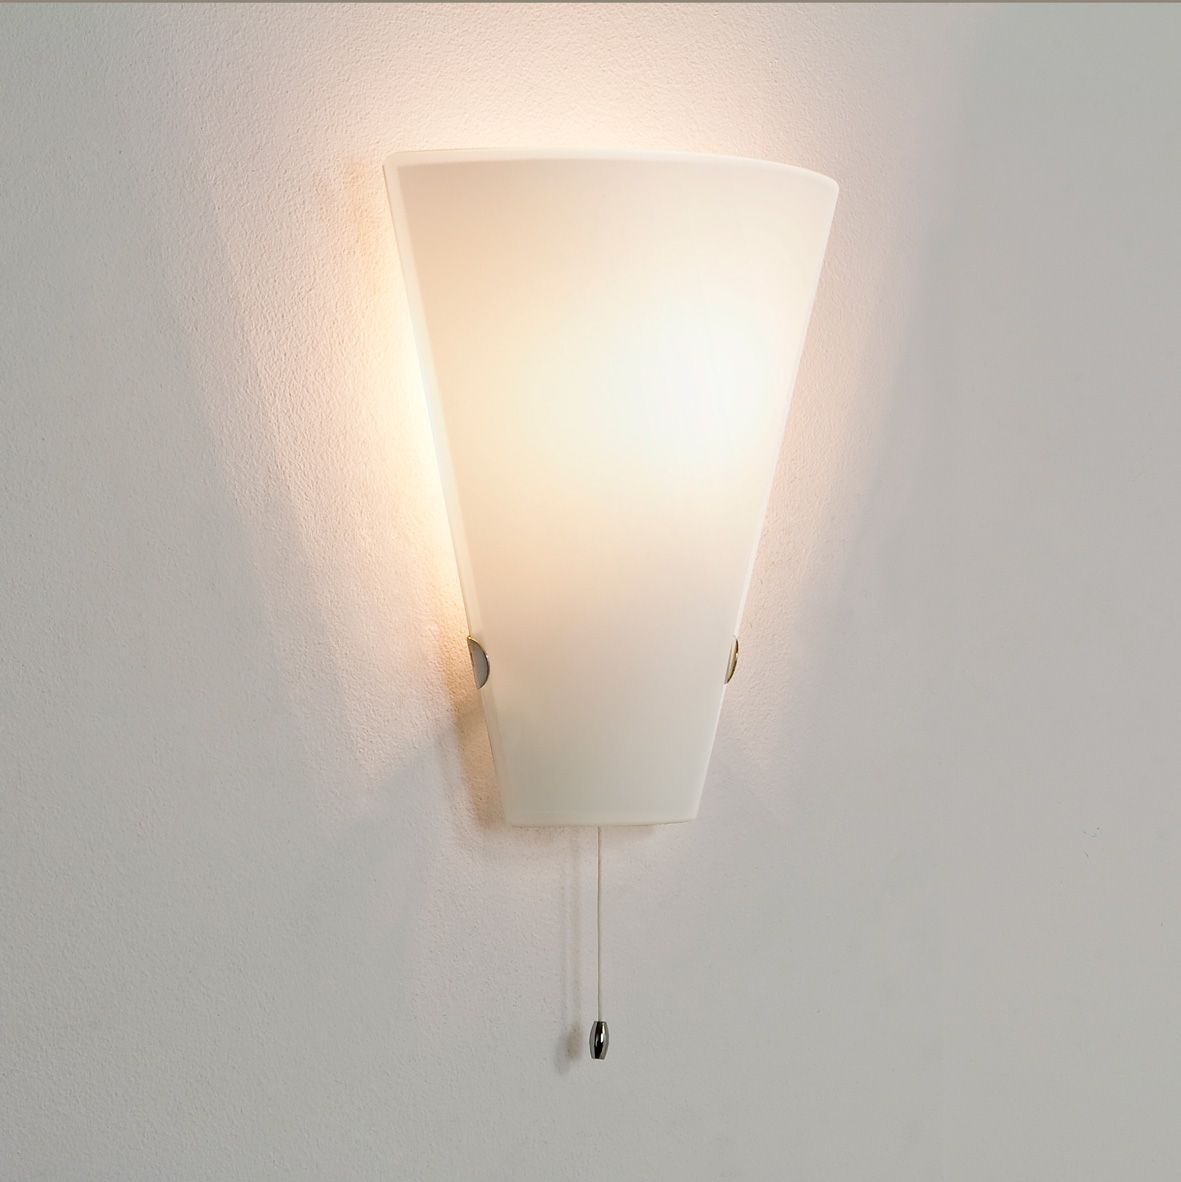 Good Astro Taper 0248 Dimmable Pull Cord Switch Wall Light 60W E14 Lamp IP20  Glass